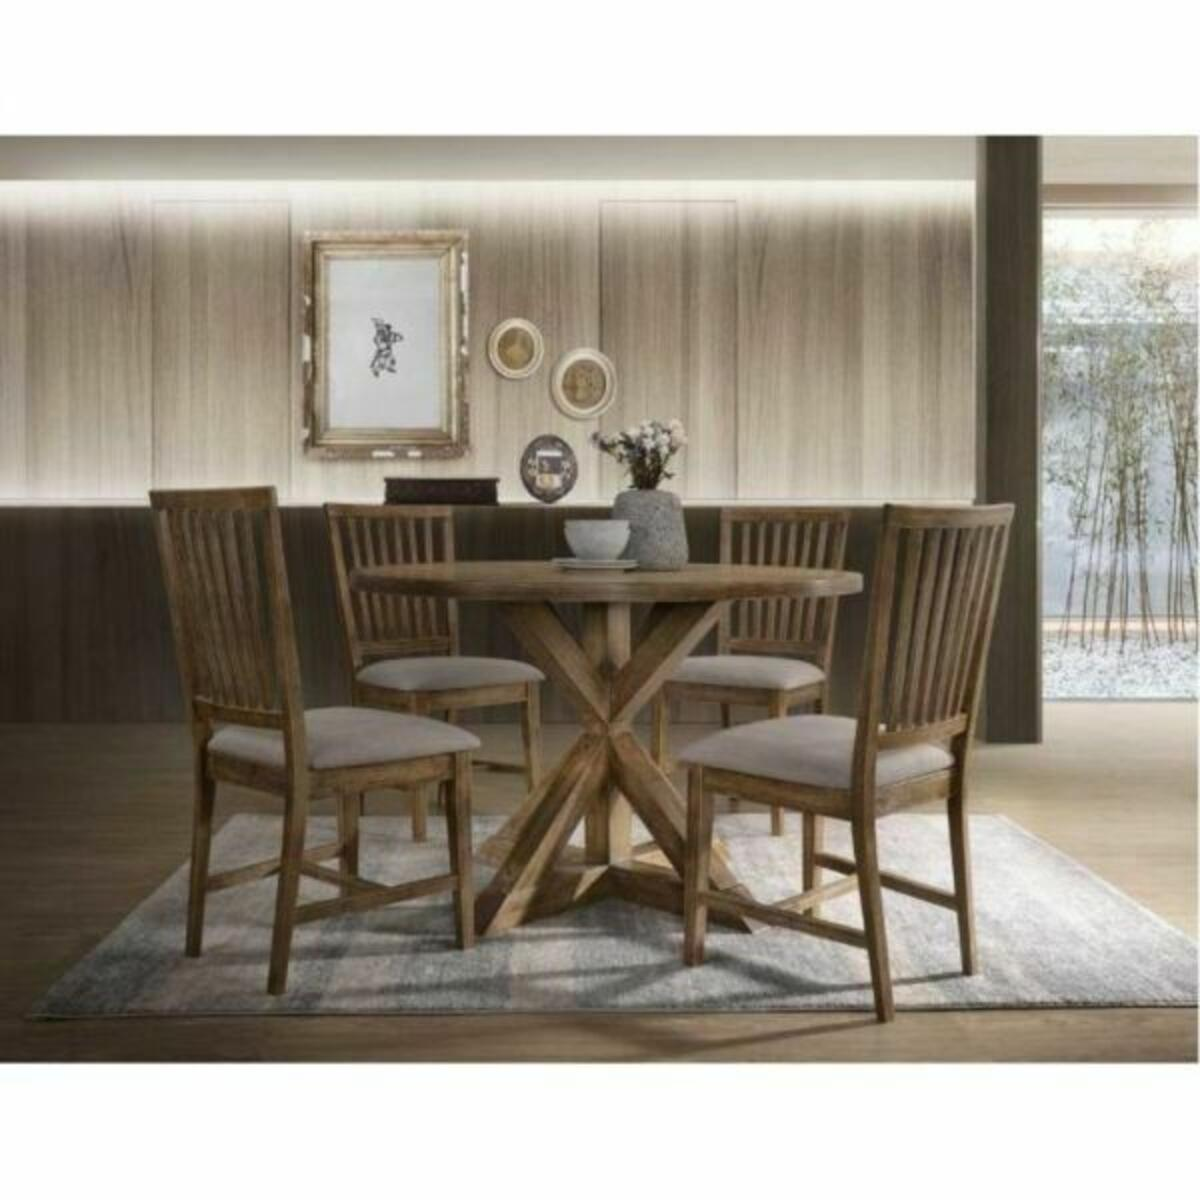 ACME Wallace II Dining Table - 72310 - Weathered Oak